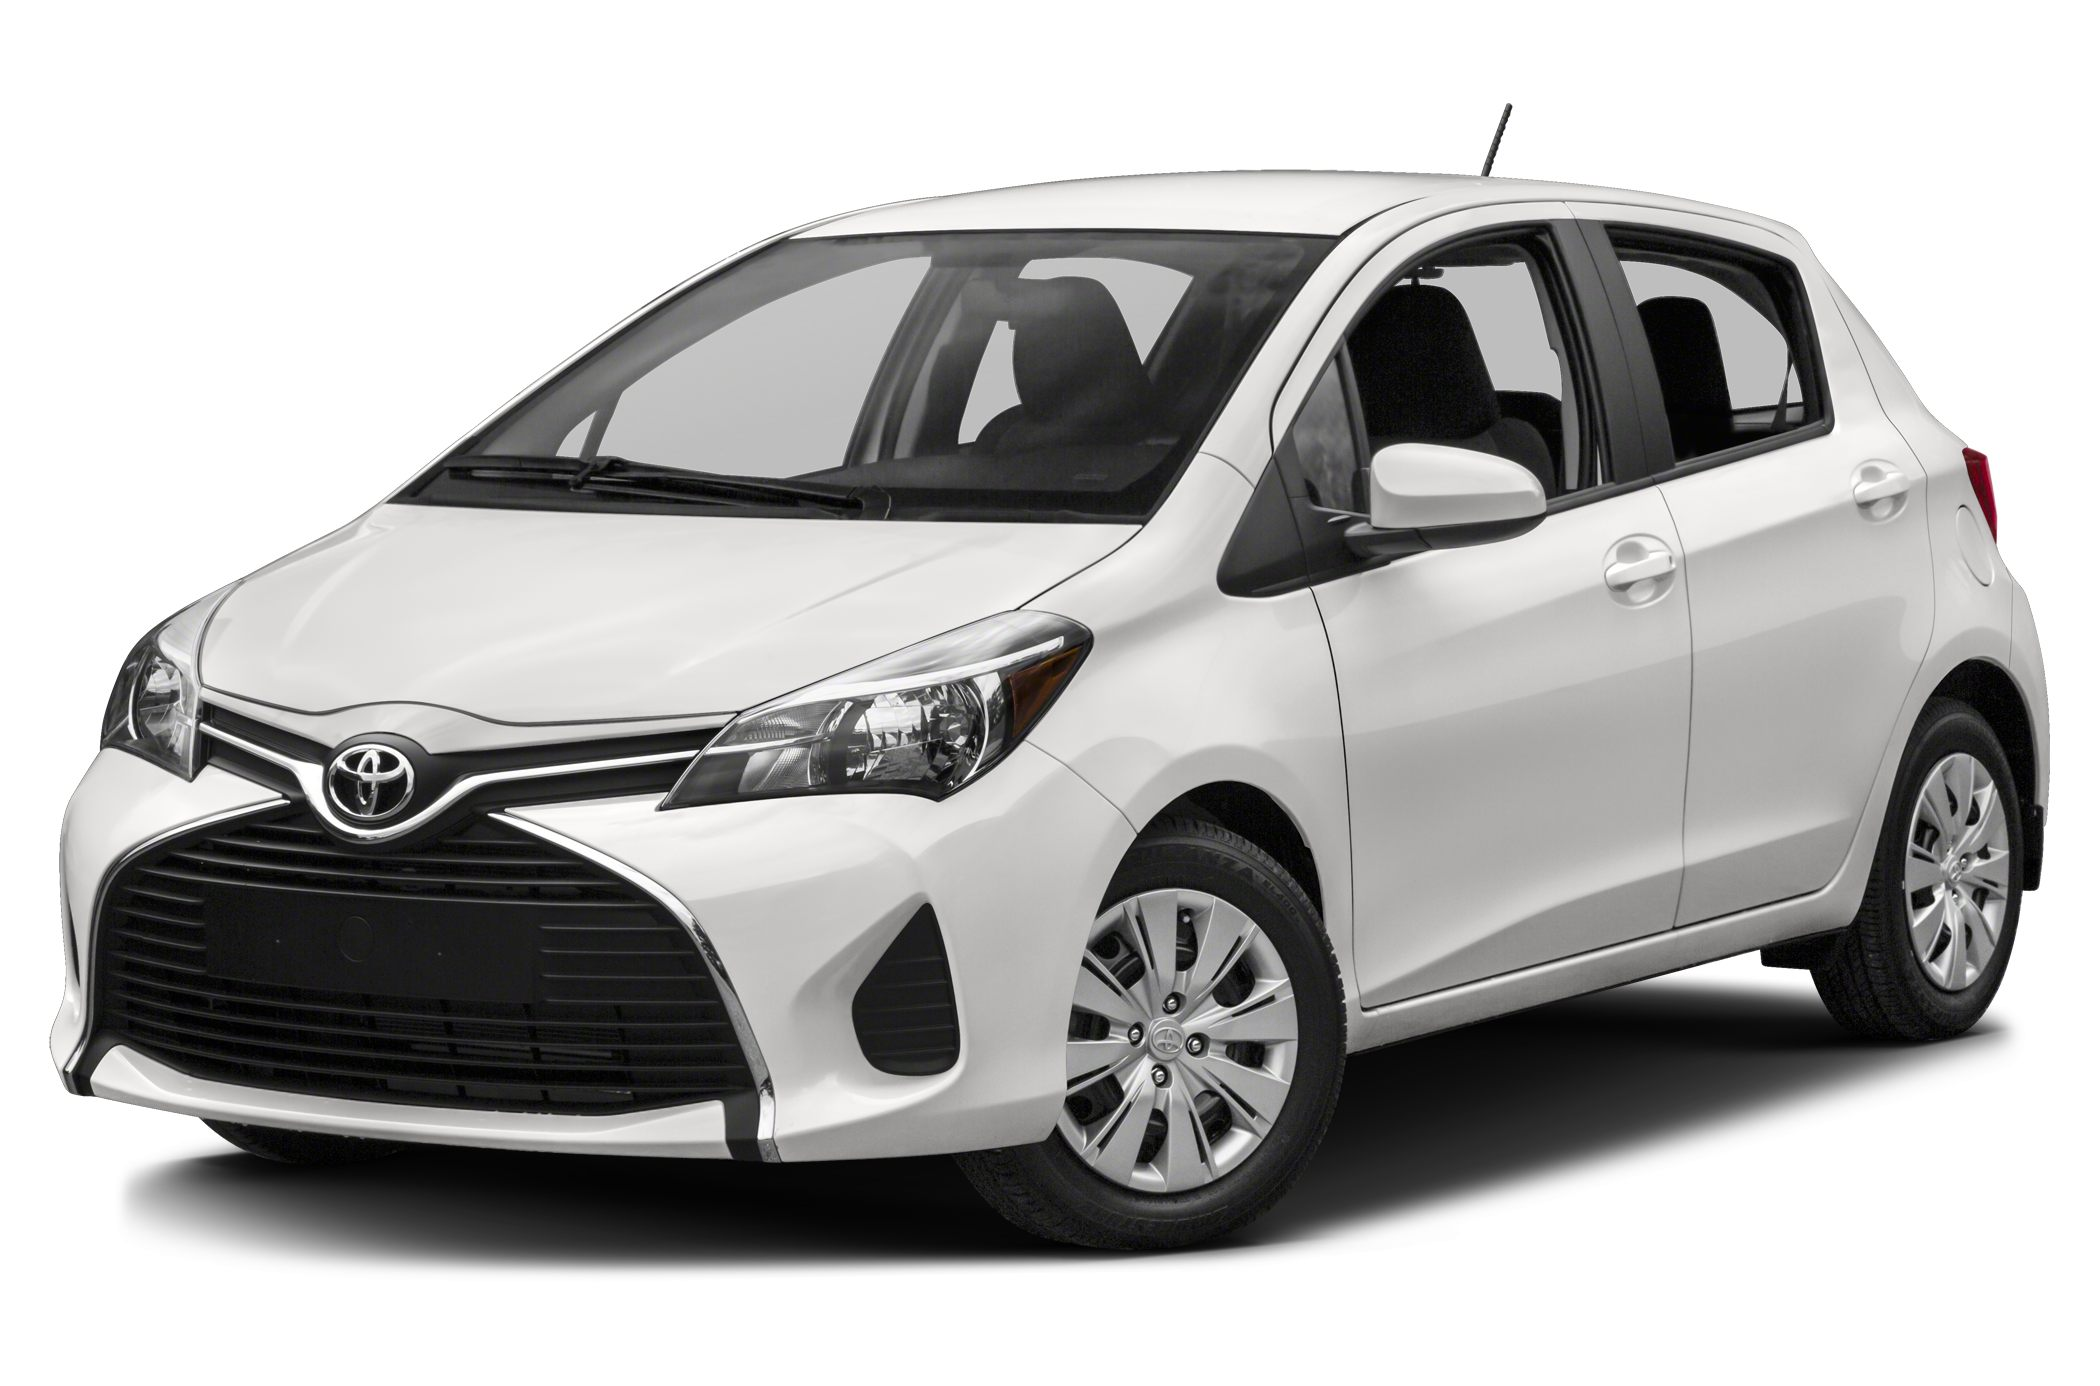 2015 Toyota Yaris LE Hatchback for sale in Superior for $17,885 with 8 miles